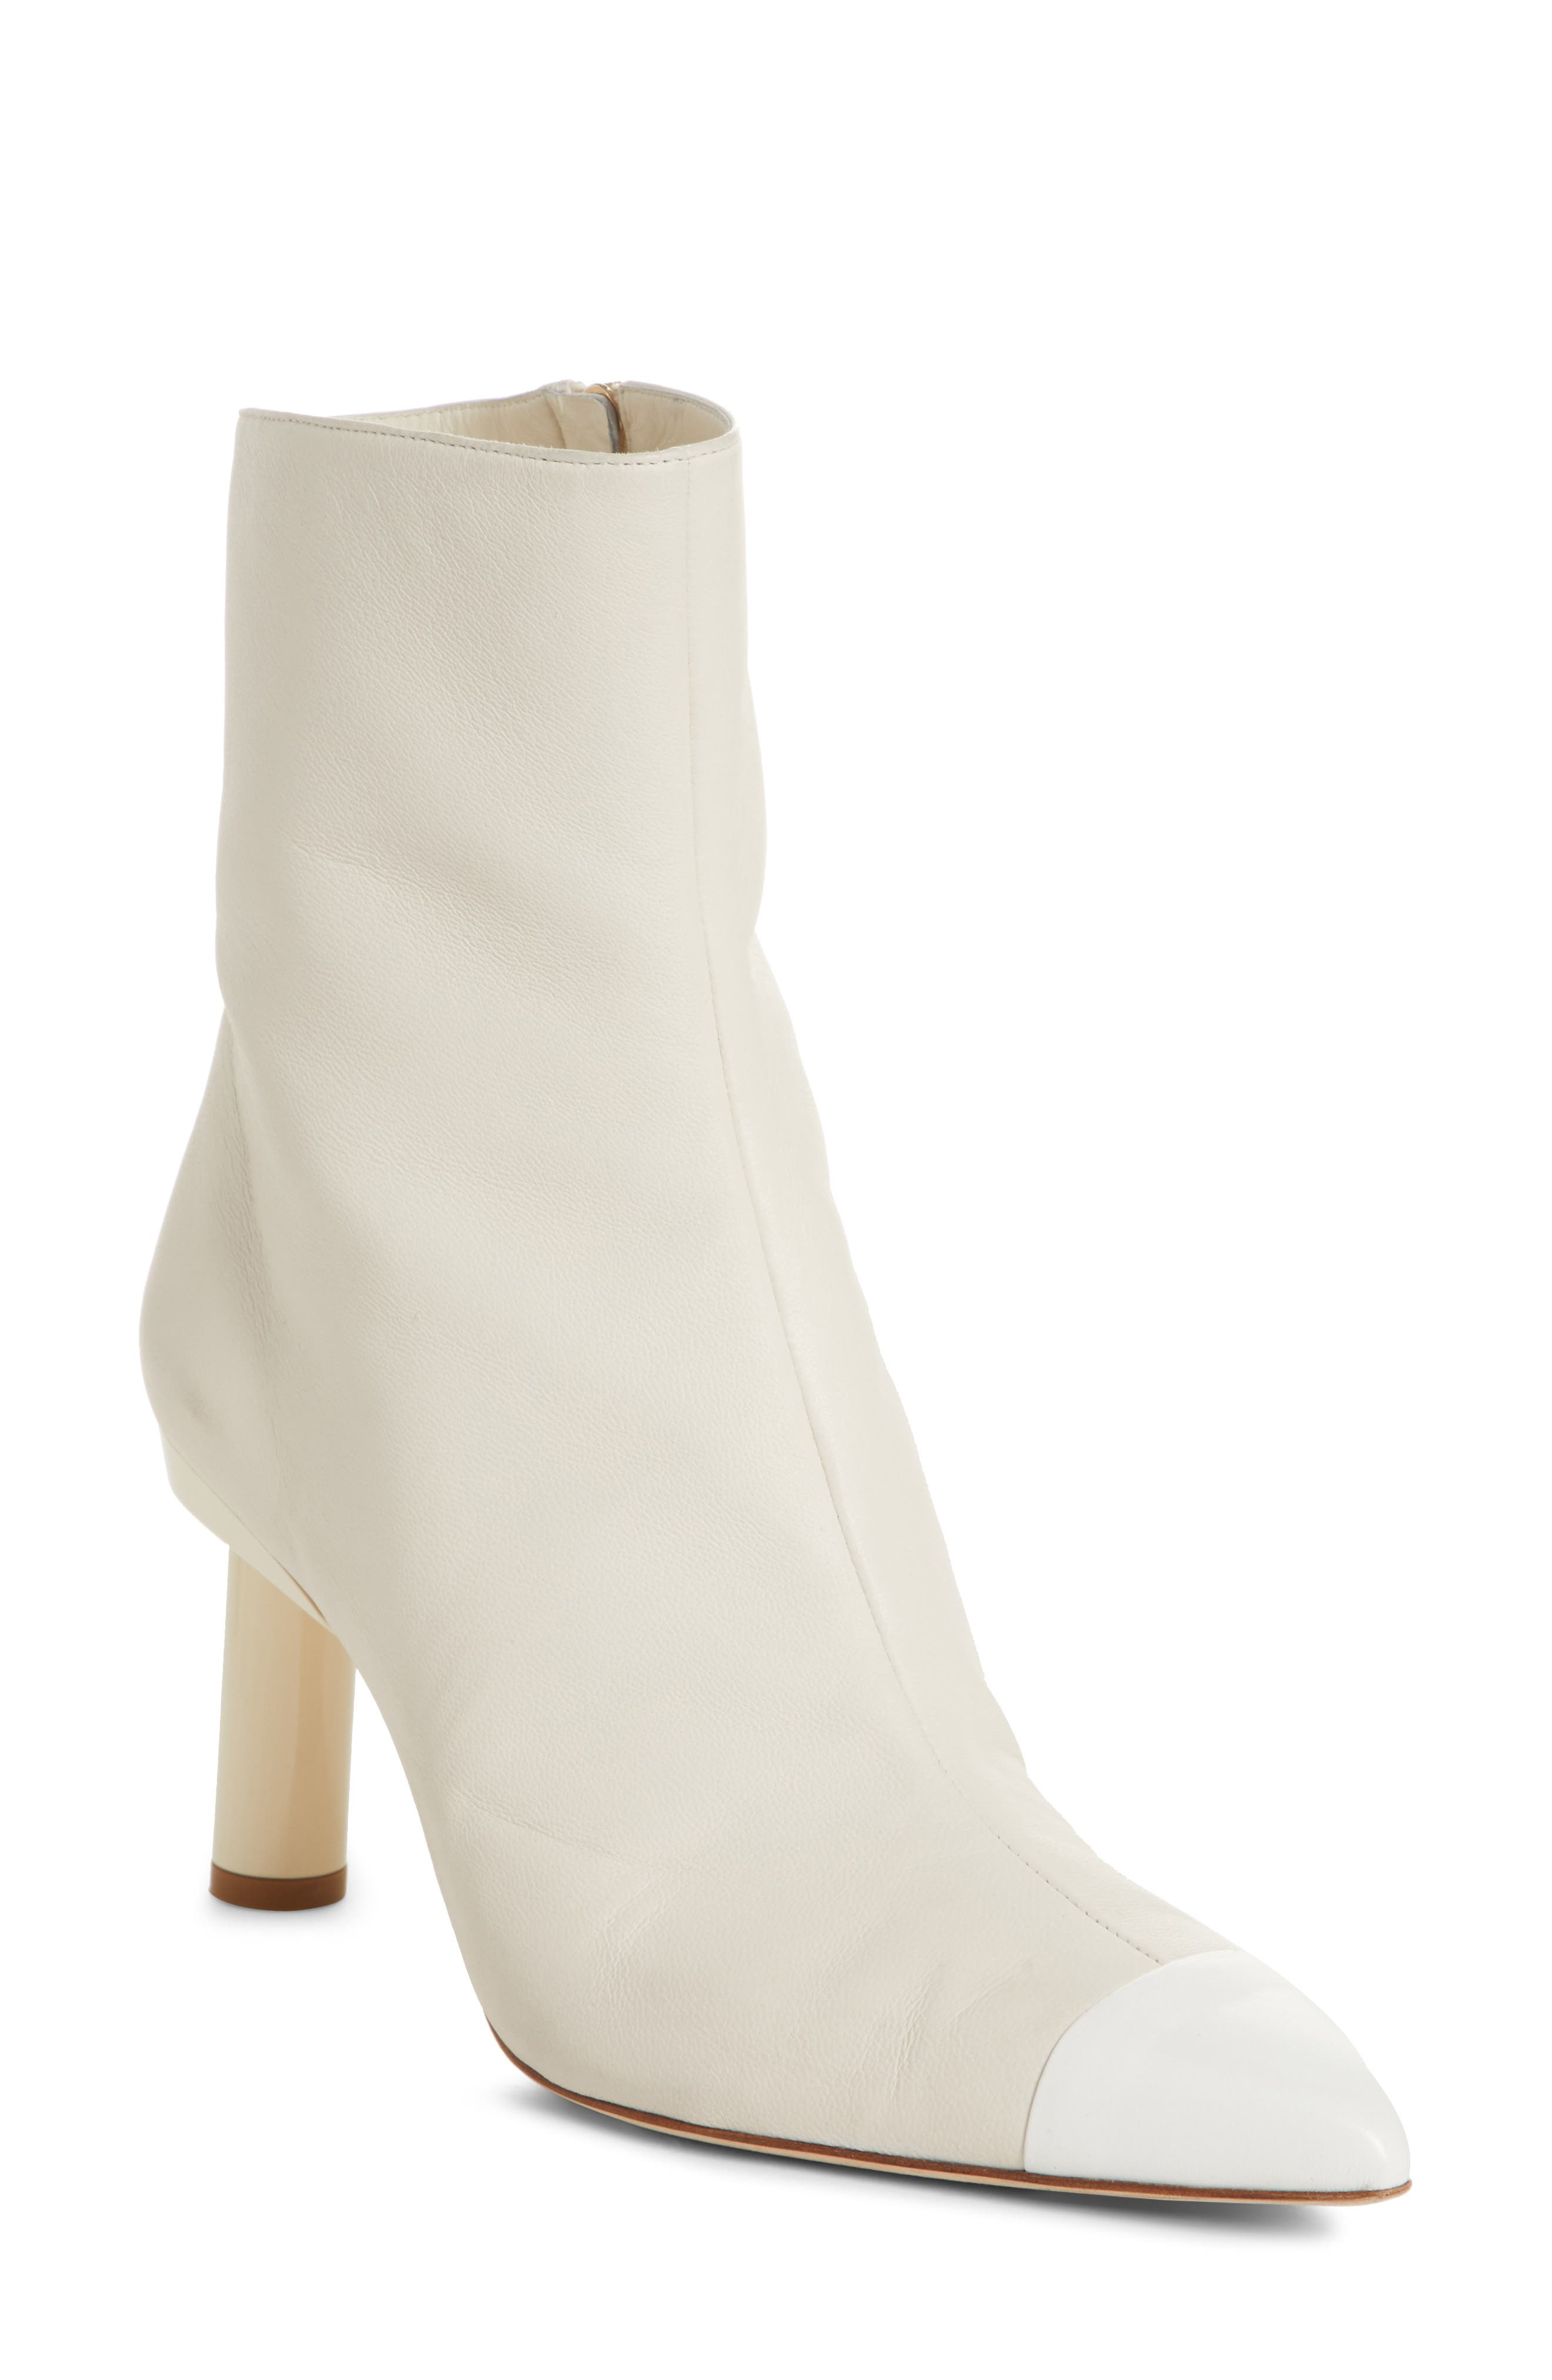 Grant Column Heel Bootie,                             Main thumbnail 1, color,                             IVORY/ BRIGHT WHITE MULTI